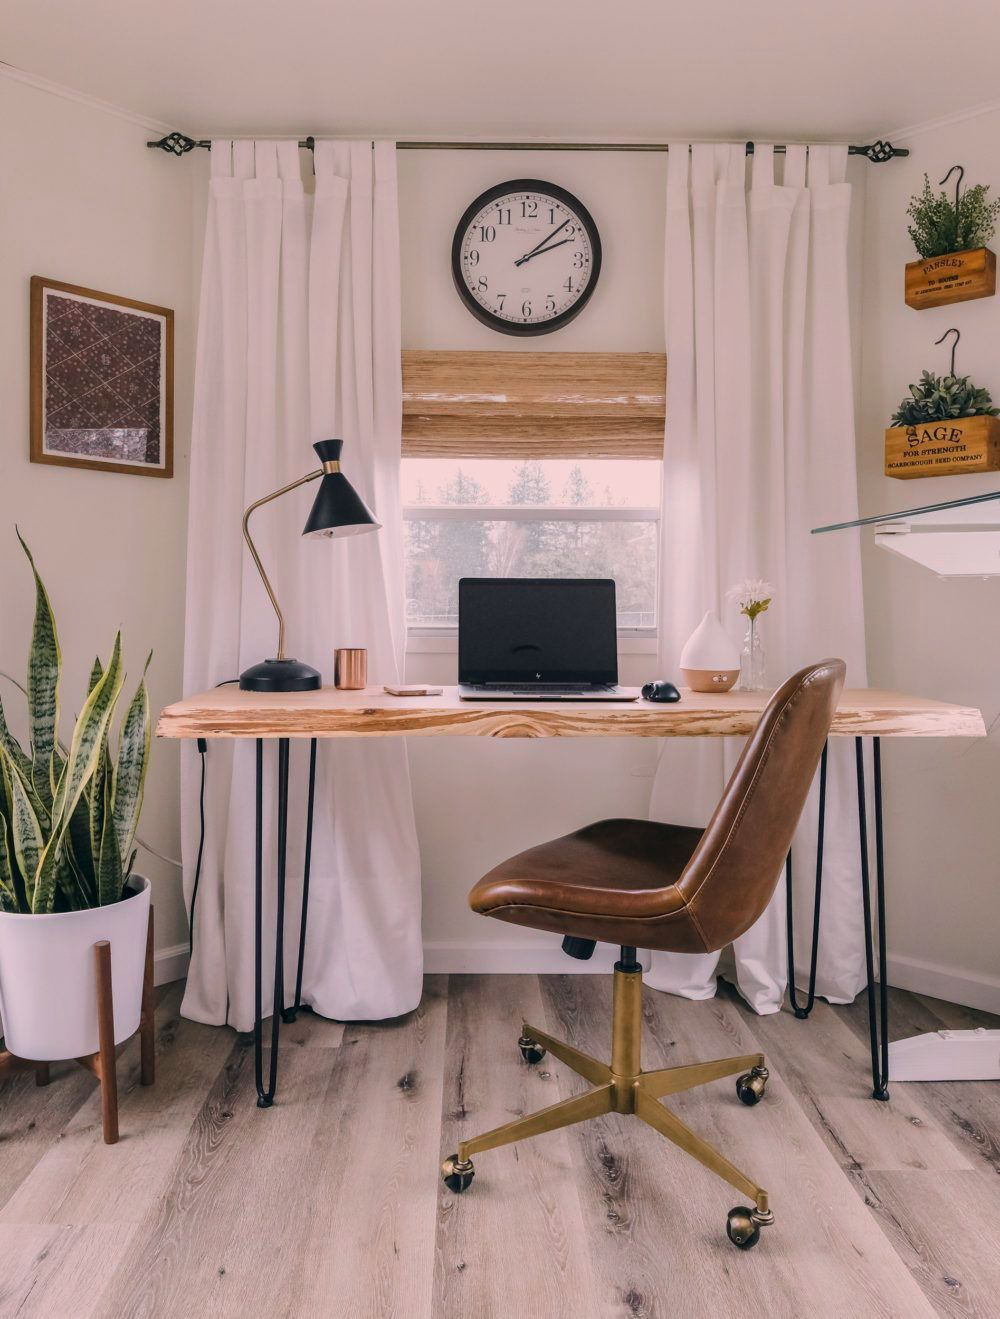 She Explains Her Exact Process For Designing This Small Home Office For Two In Their Rv Makeove In 2020 Home Office Setup Home Office Decor Small Home Office